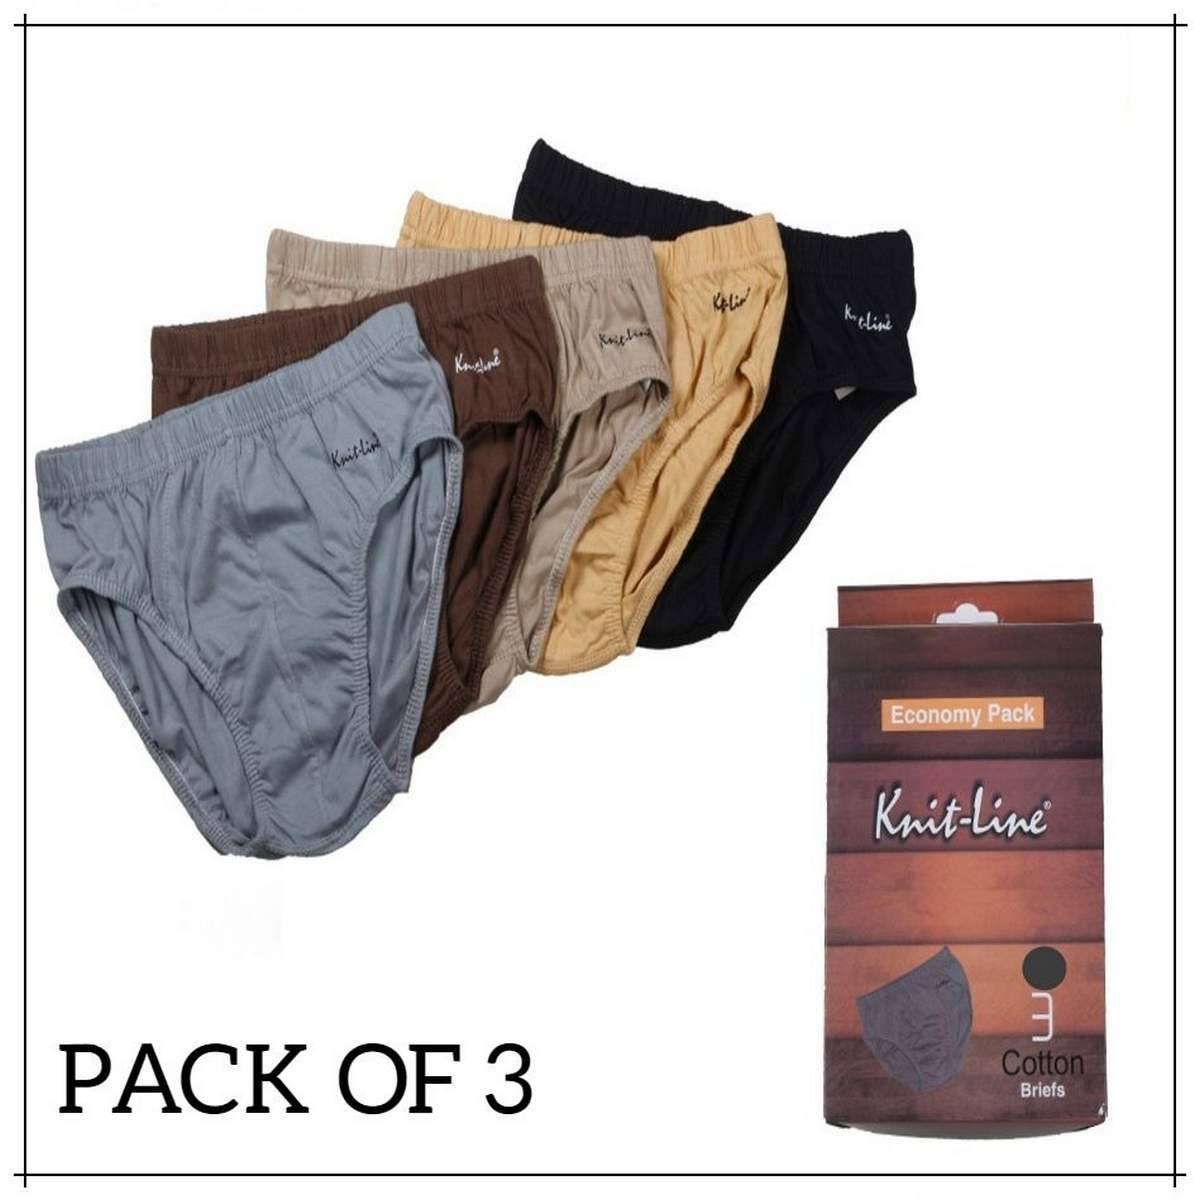 Knitline Economy Men's Underwear - Pack of 3 High Quality Cotton Knitted Men's Briefs